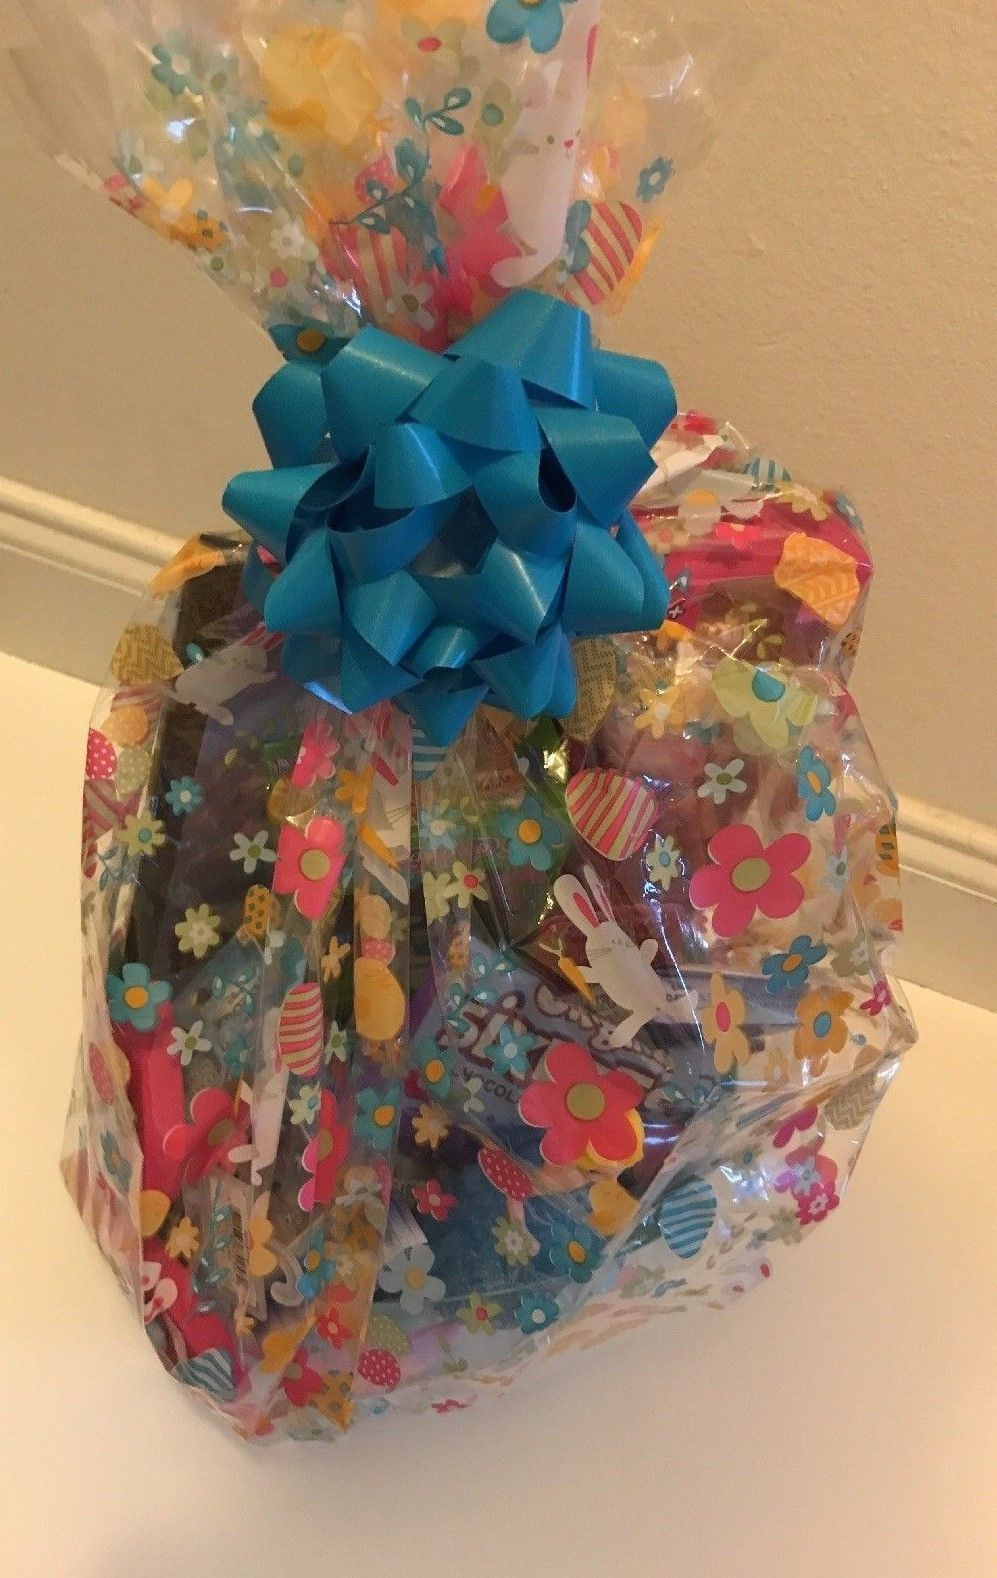 Disney Frozen Theme Easter Pre-Made & Pre-Filled Gift Basket For Your Princess